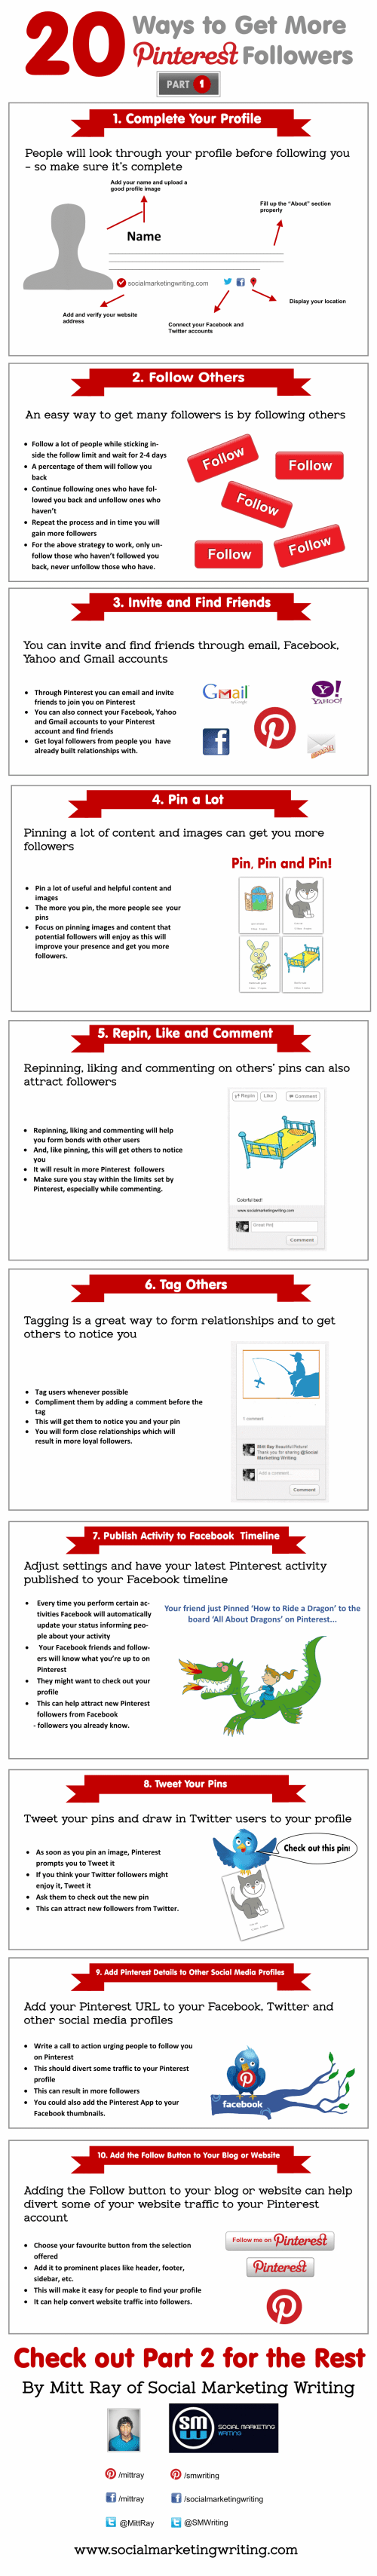 20-Ways-to-Get-More-Pinterest-Followers-Infographic-Part-1